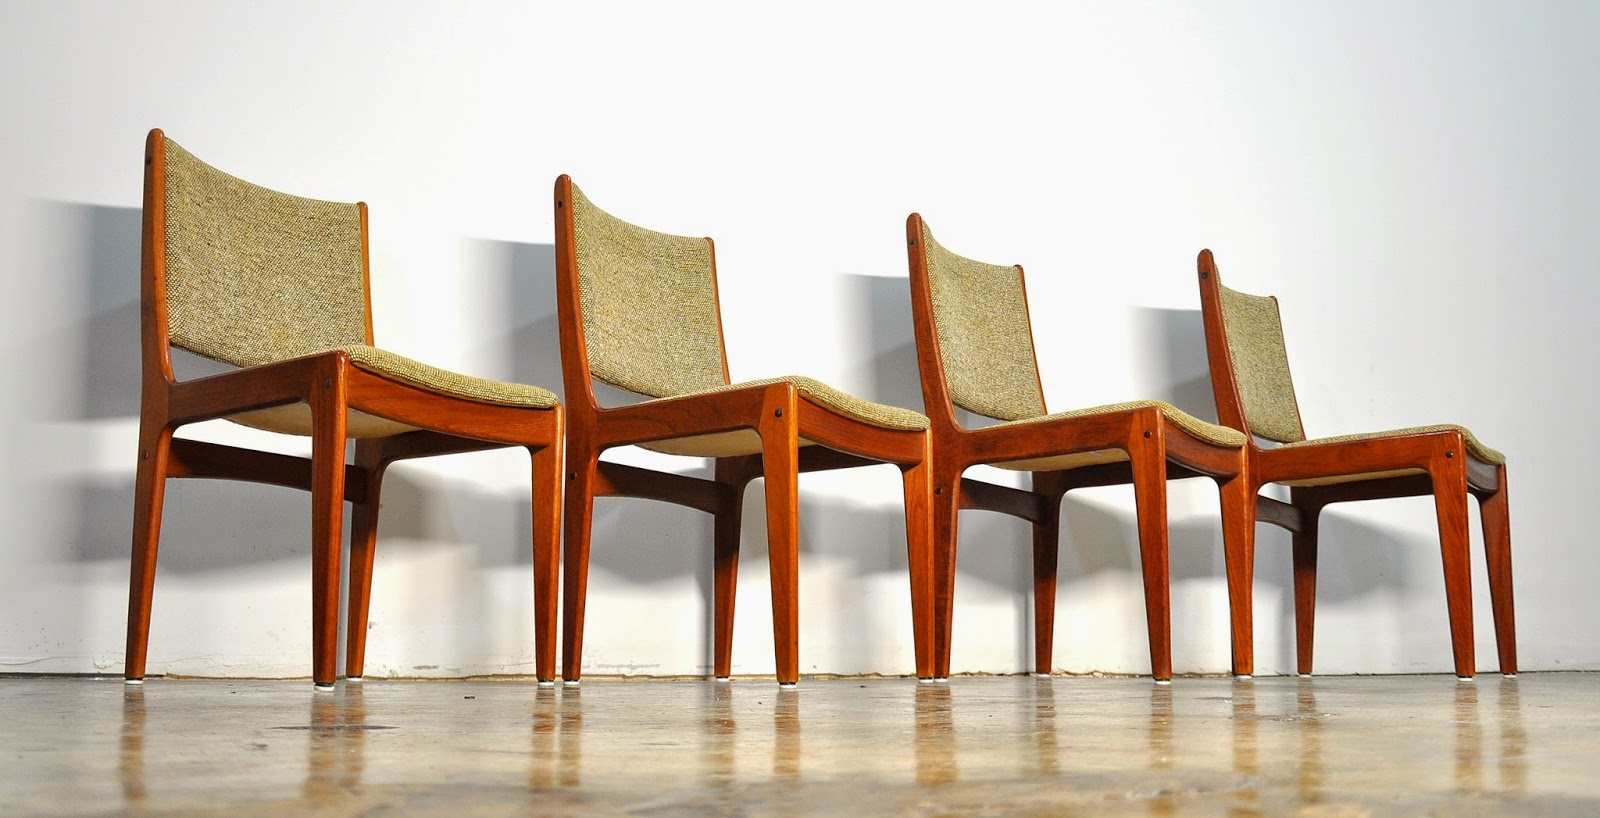 SELECT MODERN Set of 4 Danish Modern Teak Dining Chairs : ScandinavianTeakDiningChairs1 from midcenturymoderndesignfinds.blogspot.com size 1600 x 818 jpeg 210kB